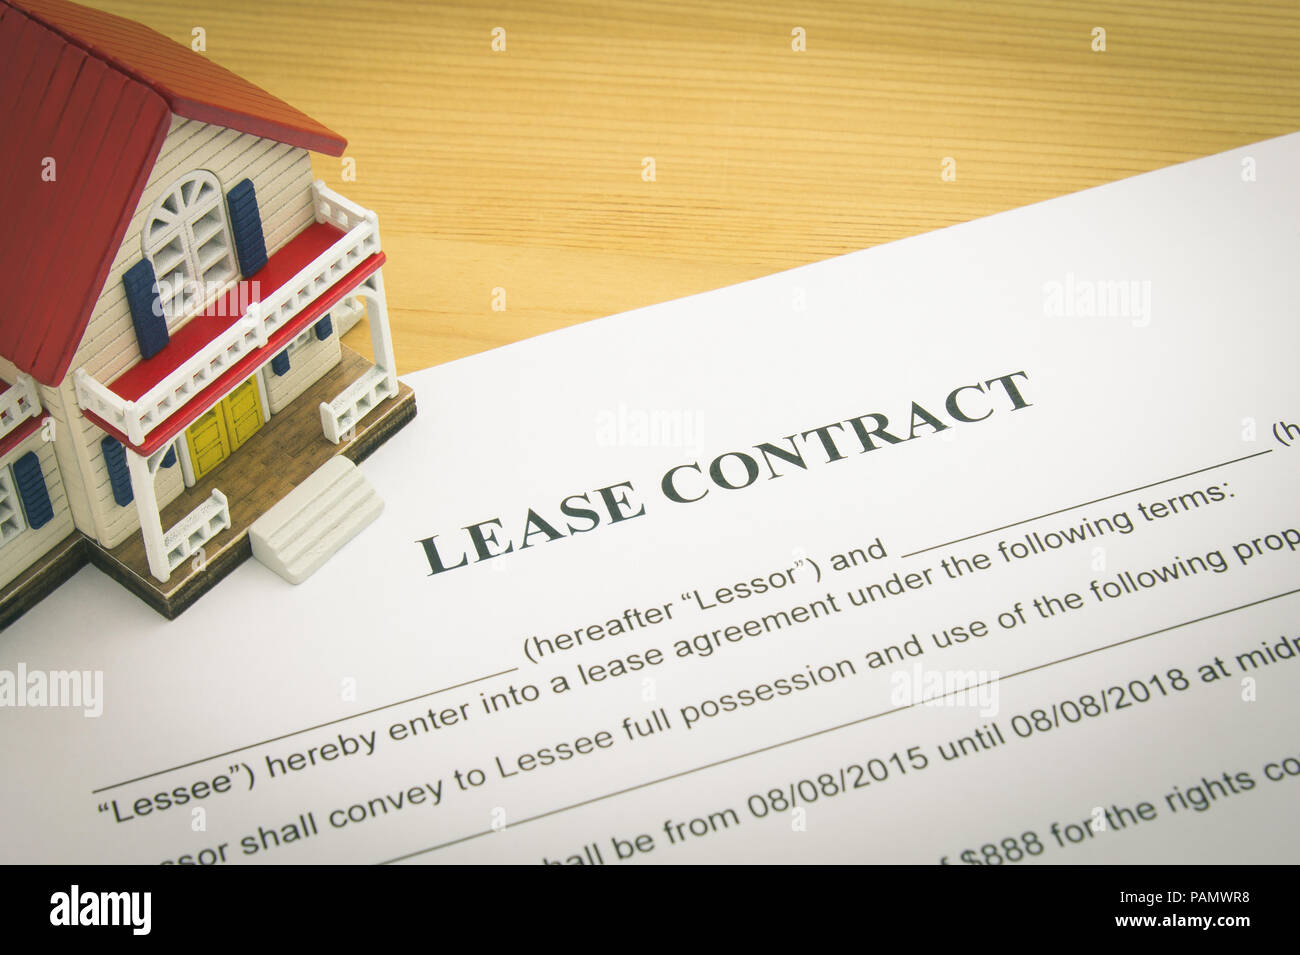 Home Lease Contract Or House Lease Contract Agreement Concept About